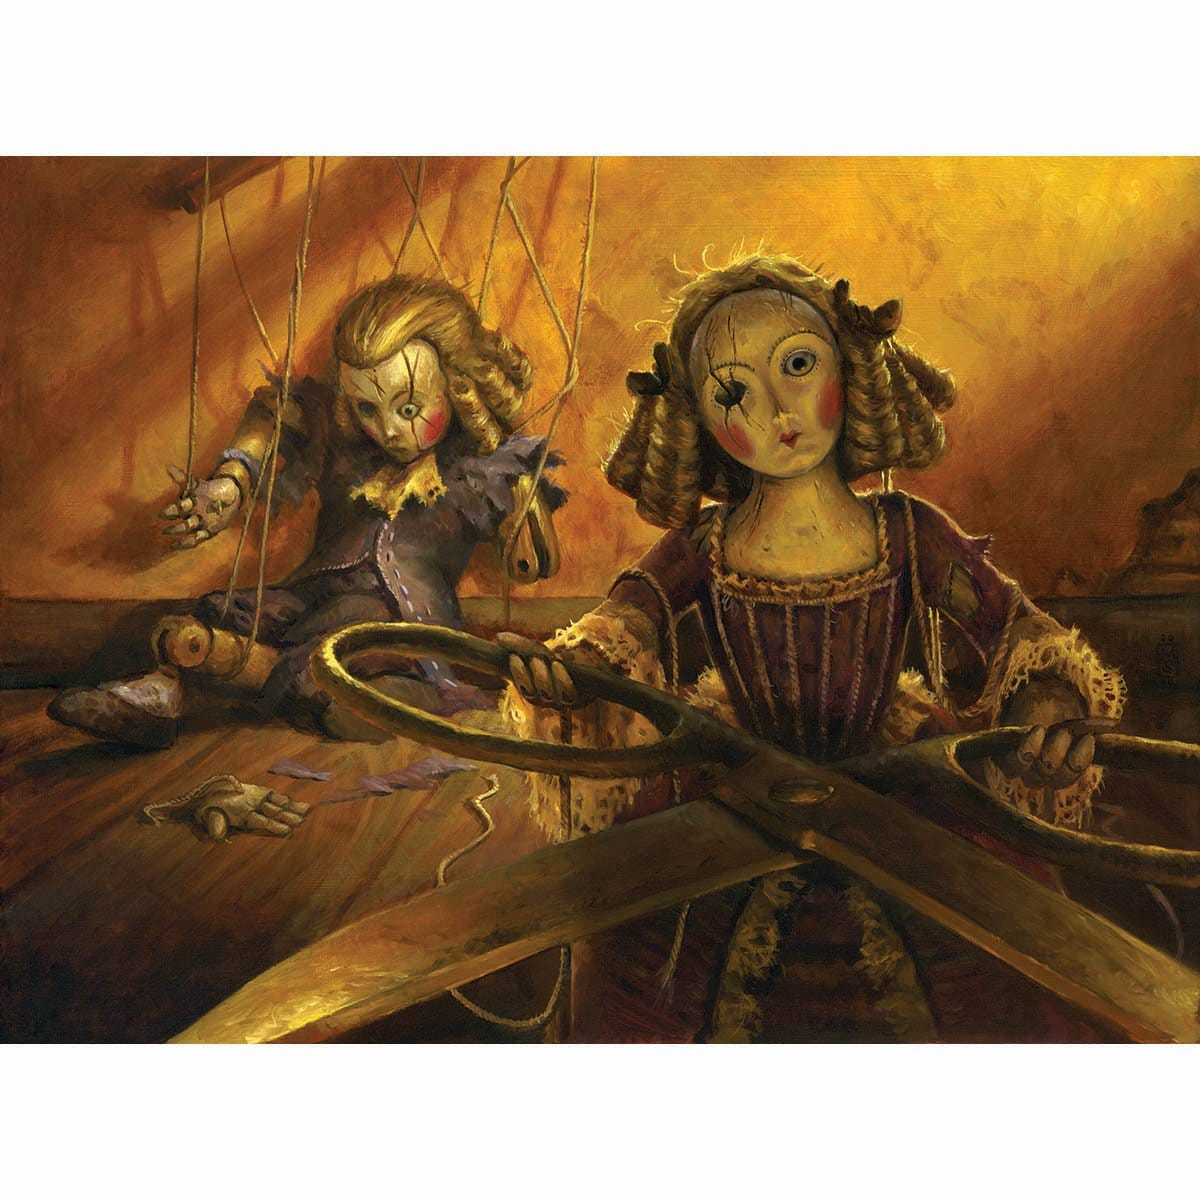 Creepy Doll Print - Print - Original Magic Art - Accessories for Magic the Gathering and other card games